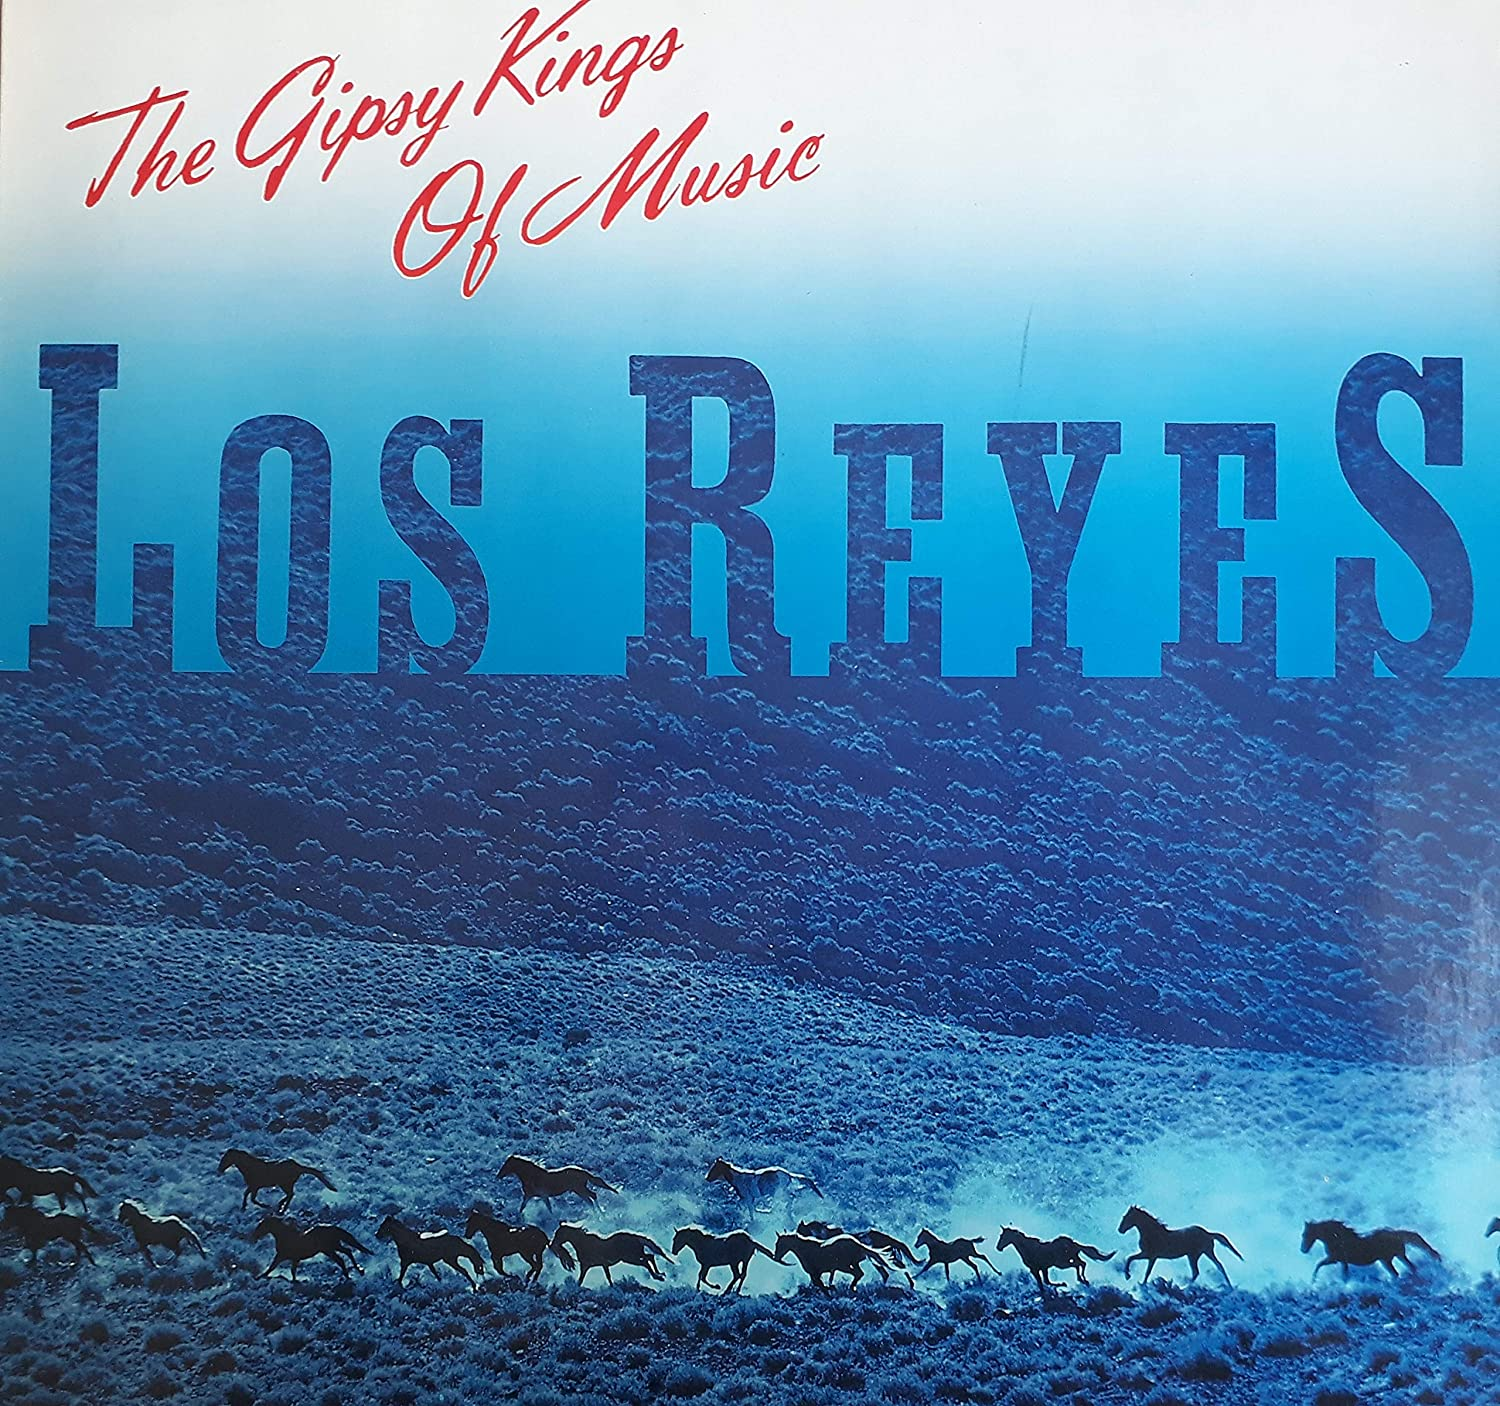 Gipsy kings of music 1988 Vinyl-LP record Limited time for free shipping online shop Vinyl